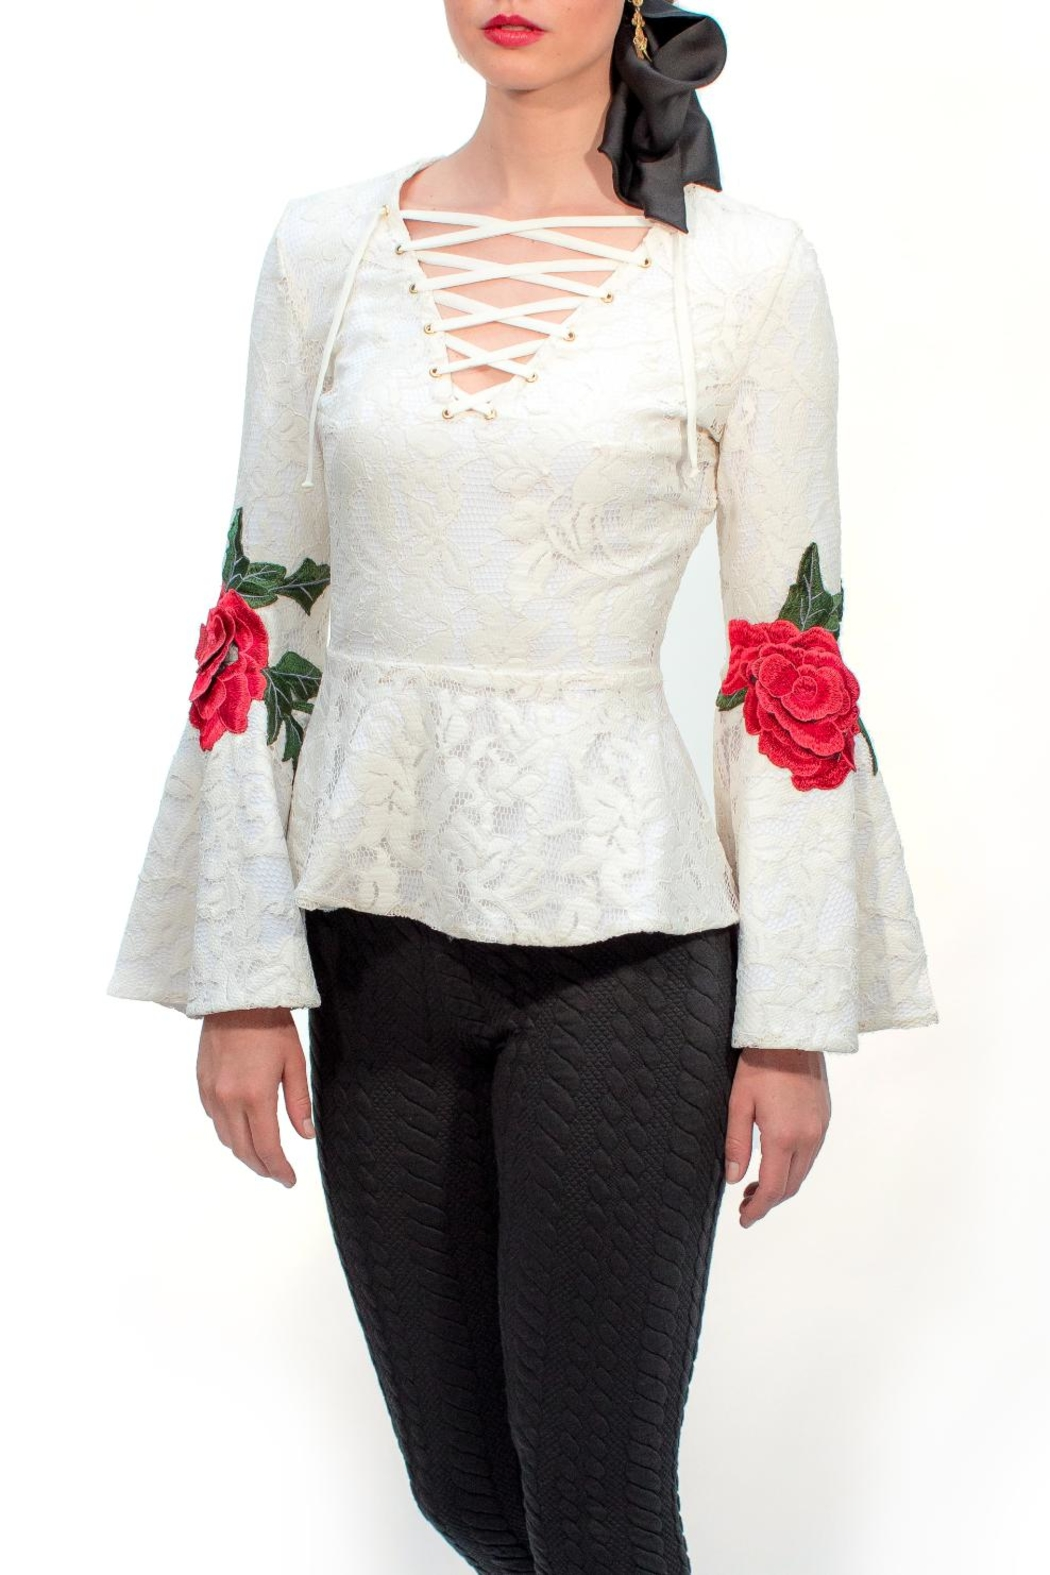 Viesca y Viesca Lace Embroided Blouse - Front Full Image